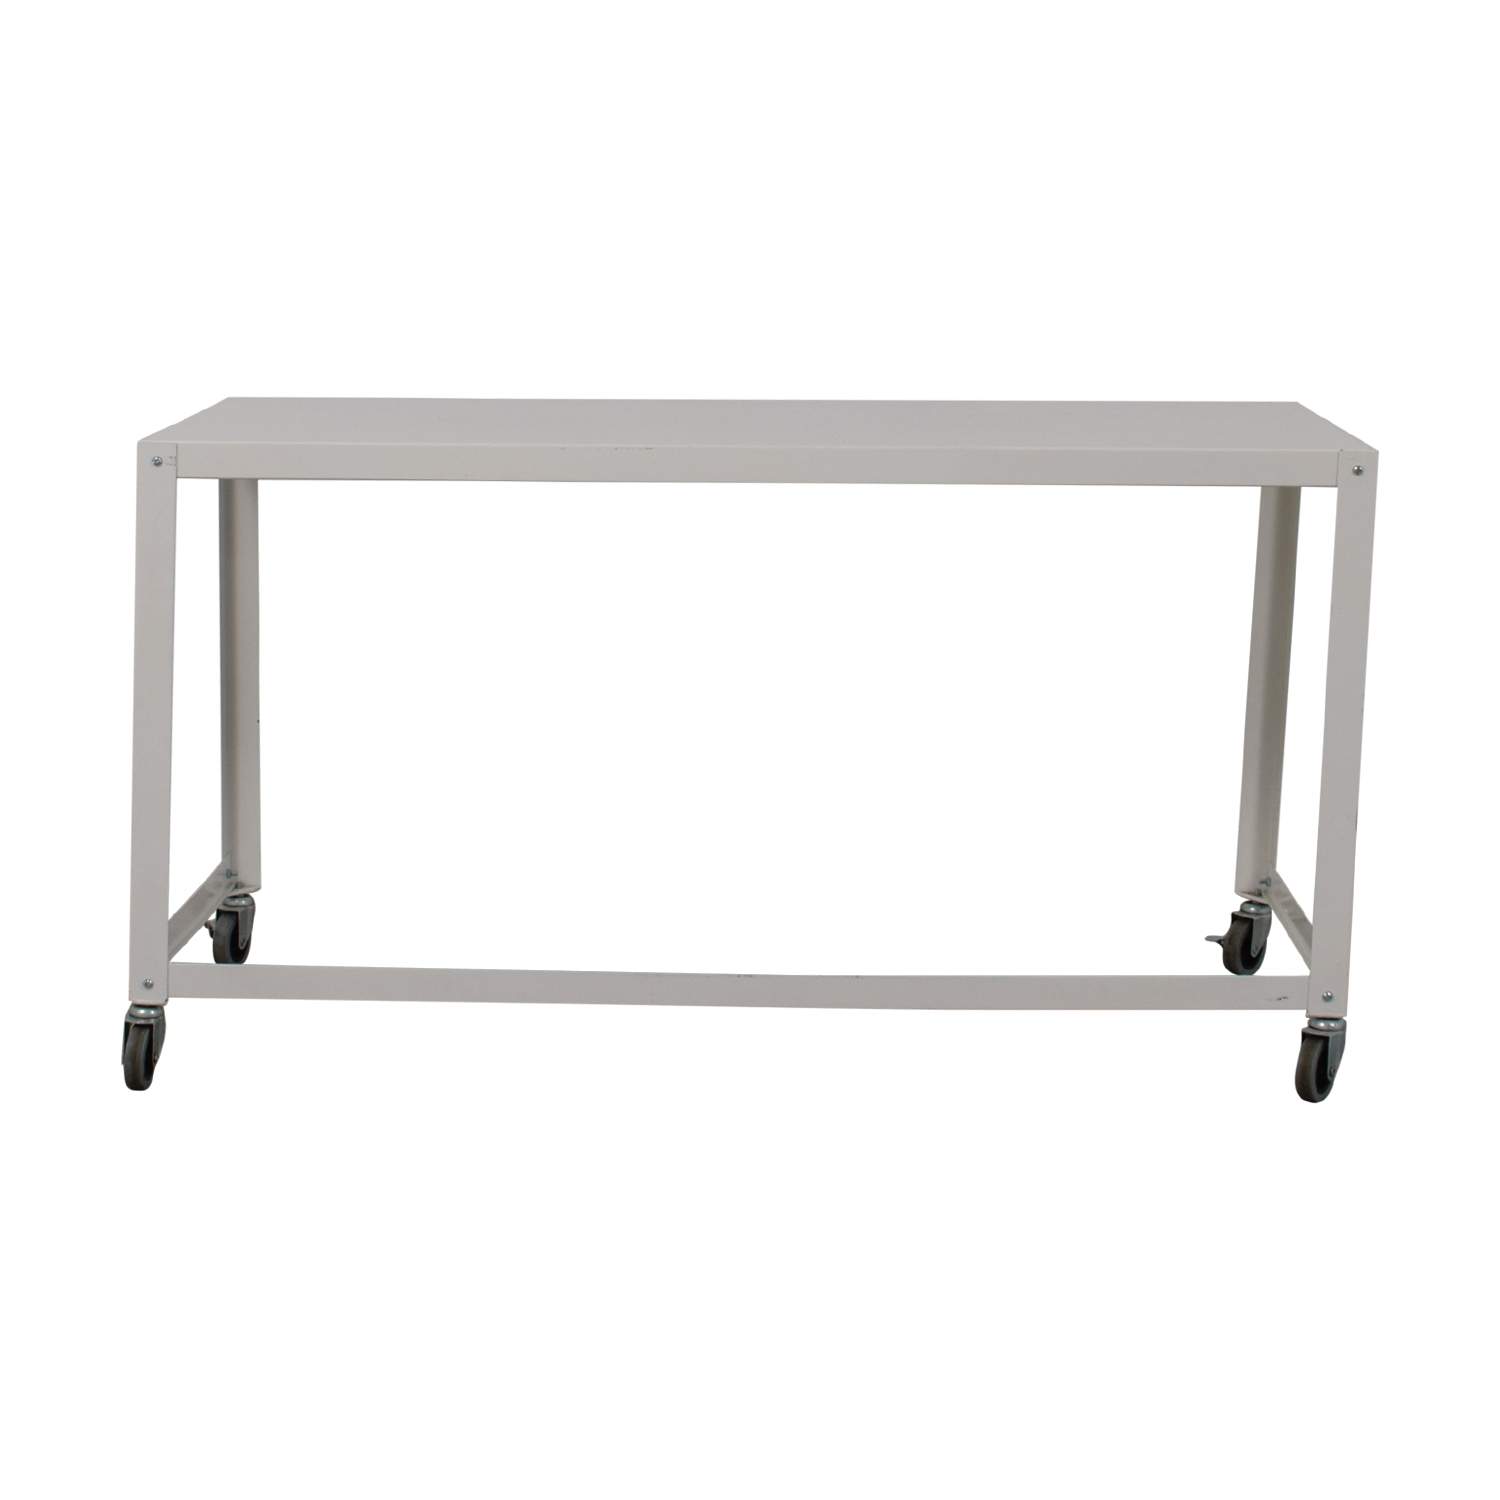 [%81% Off – Cb2 Cb2 Go Cart White Rolling Desk / Tables Pertaining To Favorite Go Cart White Rolling Coffee Tables|Go Cart White Rolling Coffee Tables Regarding Preferred 81% Off – Cb2 Cb2 Go Cart White Rolling Desk / Tables|Fashionable Go Cart White Rolling Coffee Tables Inside 81% Off – Cb2 Cb2 Go Cart White Rolling Desk / Tables|Best And Newest 81% Off – Cb2 Cb2 Go Cart White Rolling Desk / Tables Inside Go Cart White Rolling Coffee Tables%] (Gallery 1 of 20)